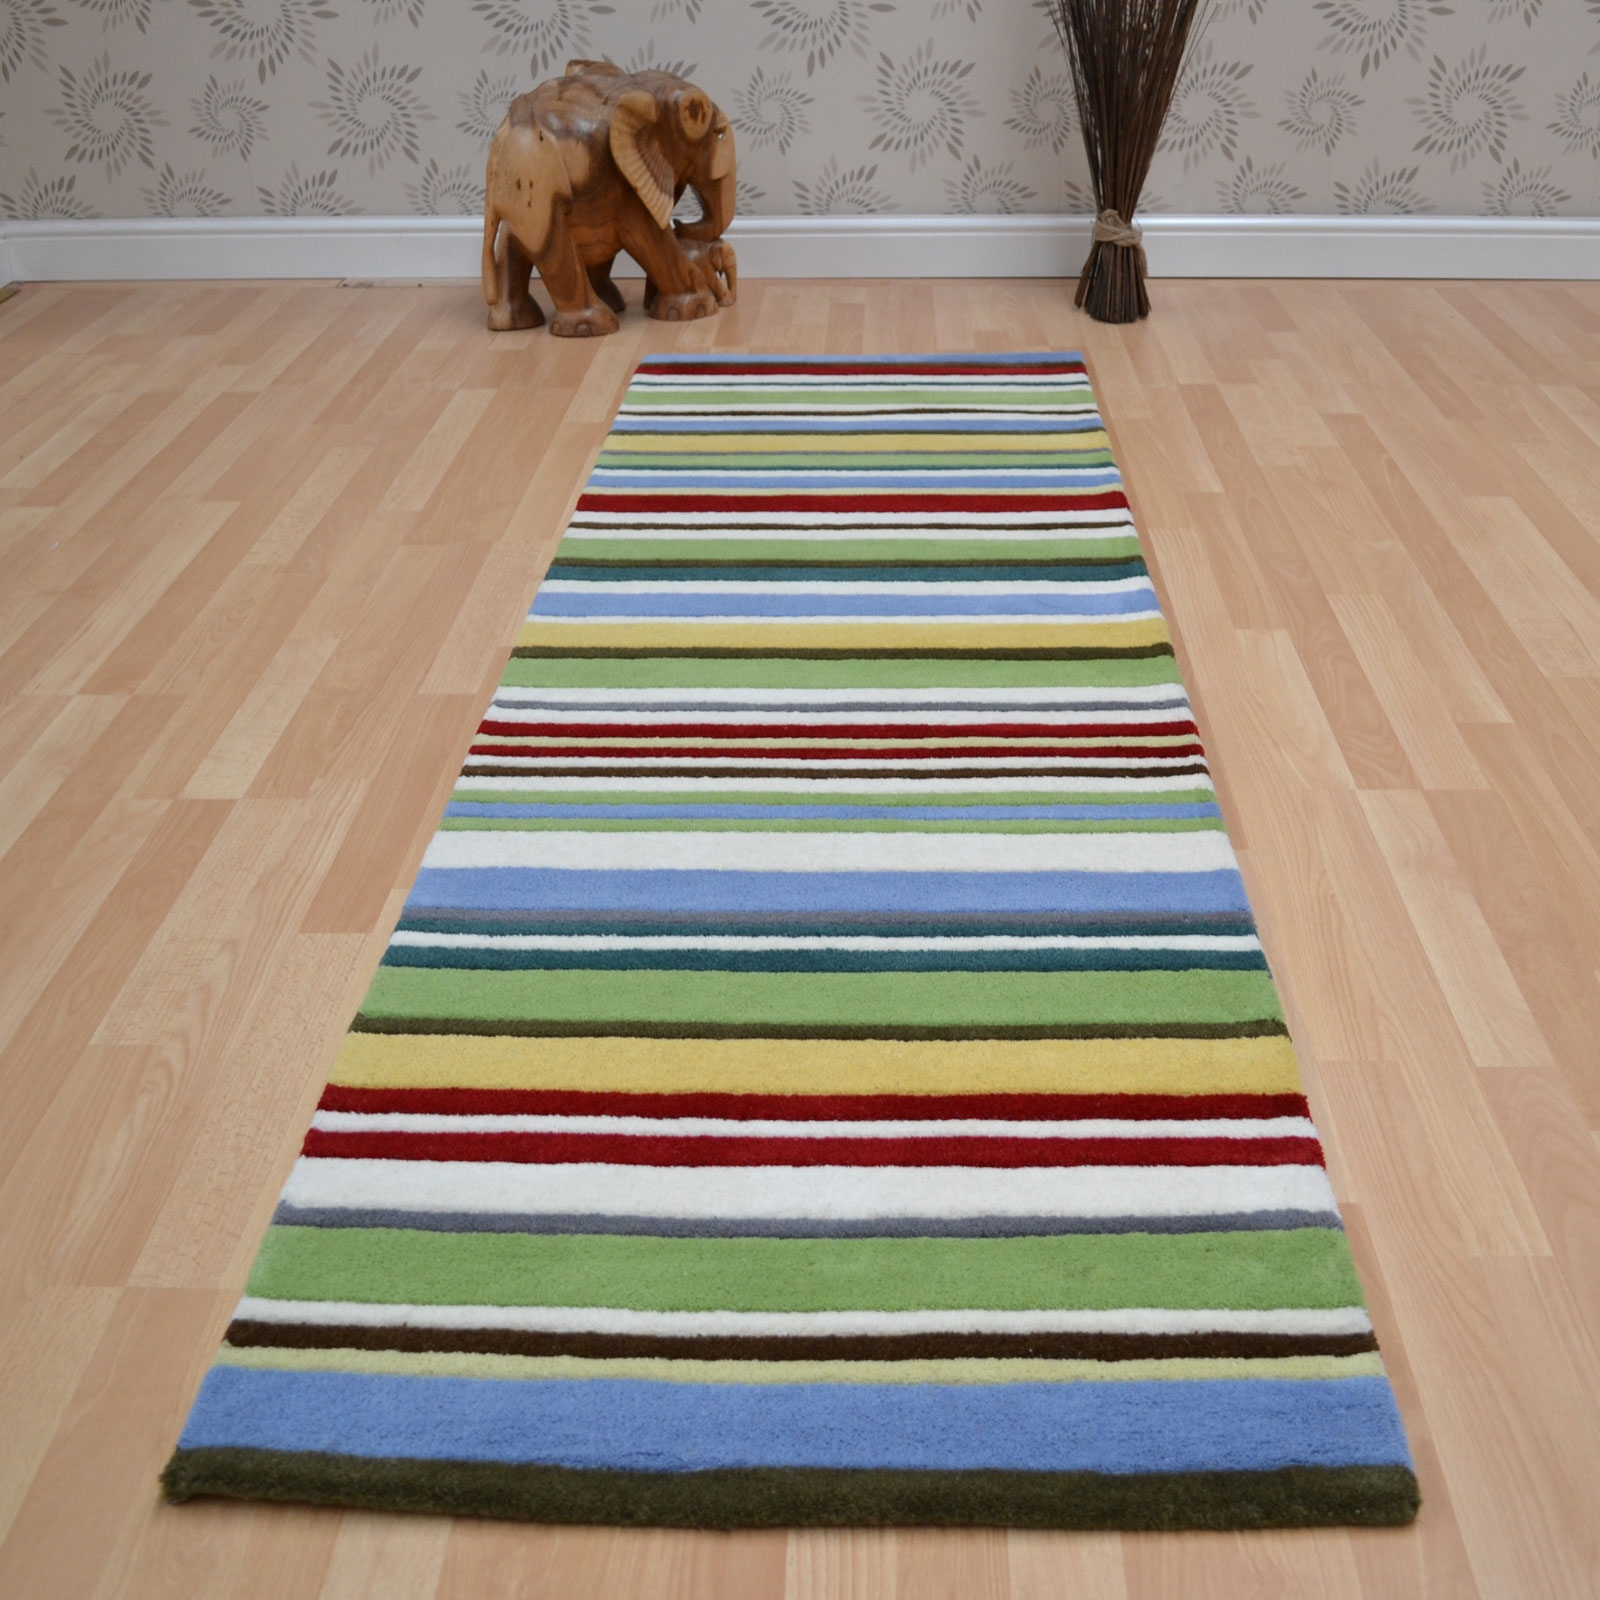 20 Best Collection Of Wool Hallway Runners